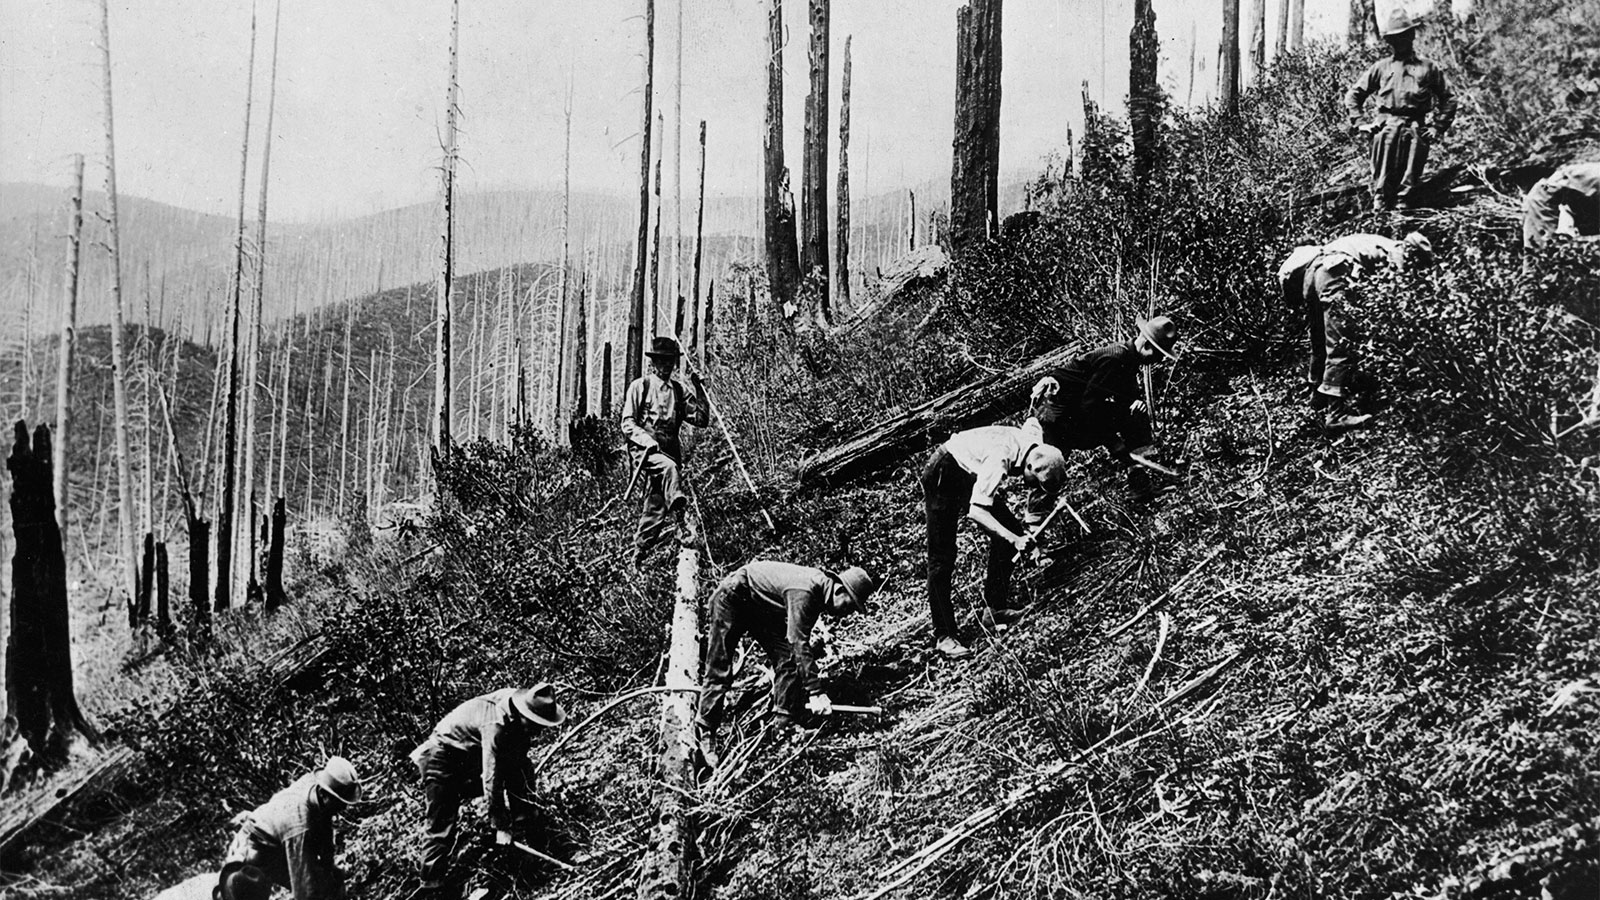 A black and white illustration of civilian climate core reforestation